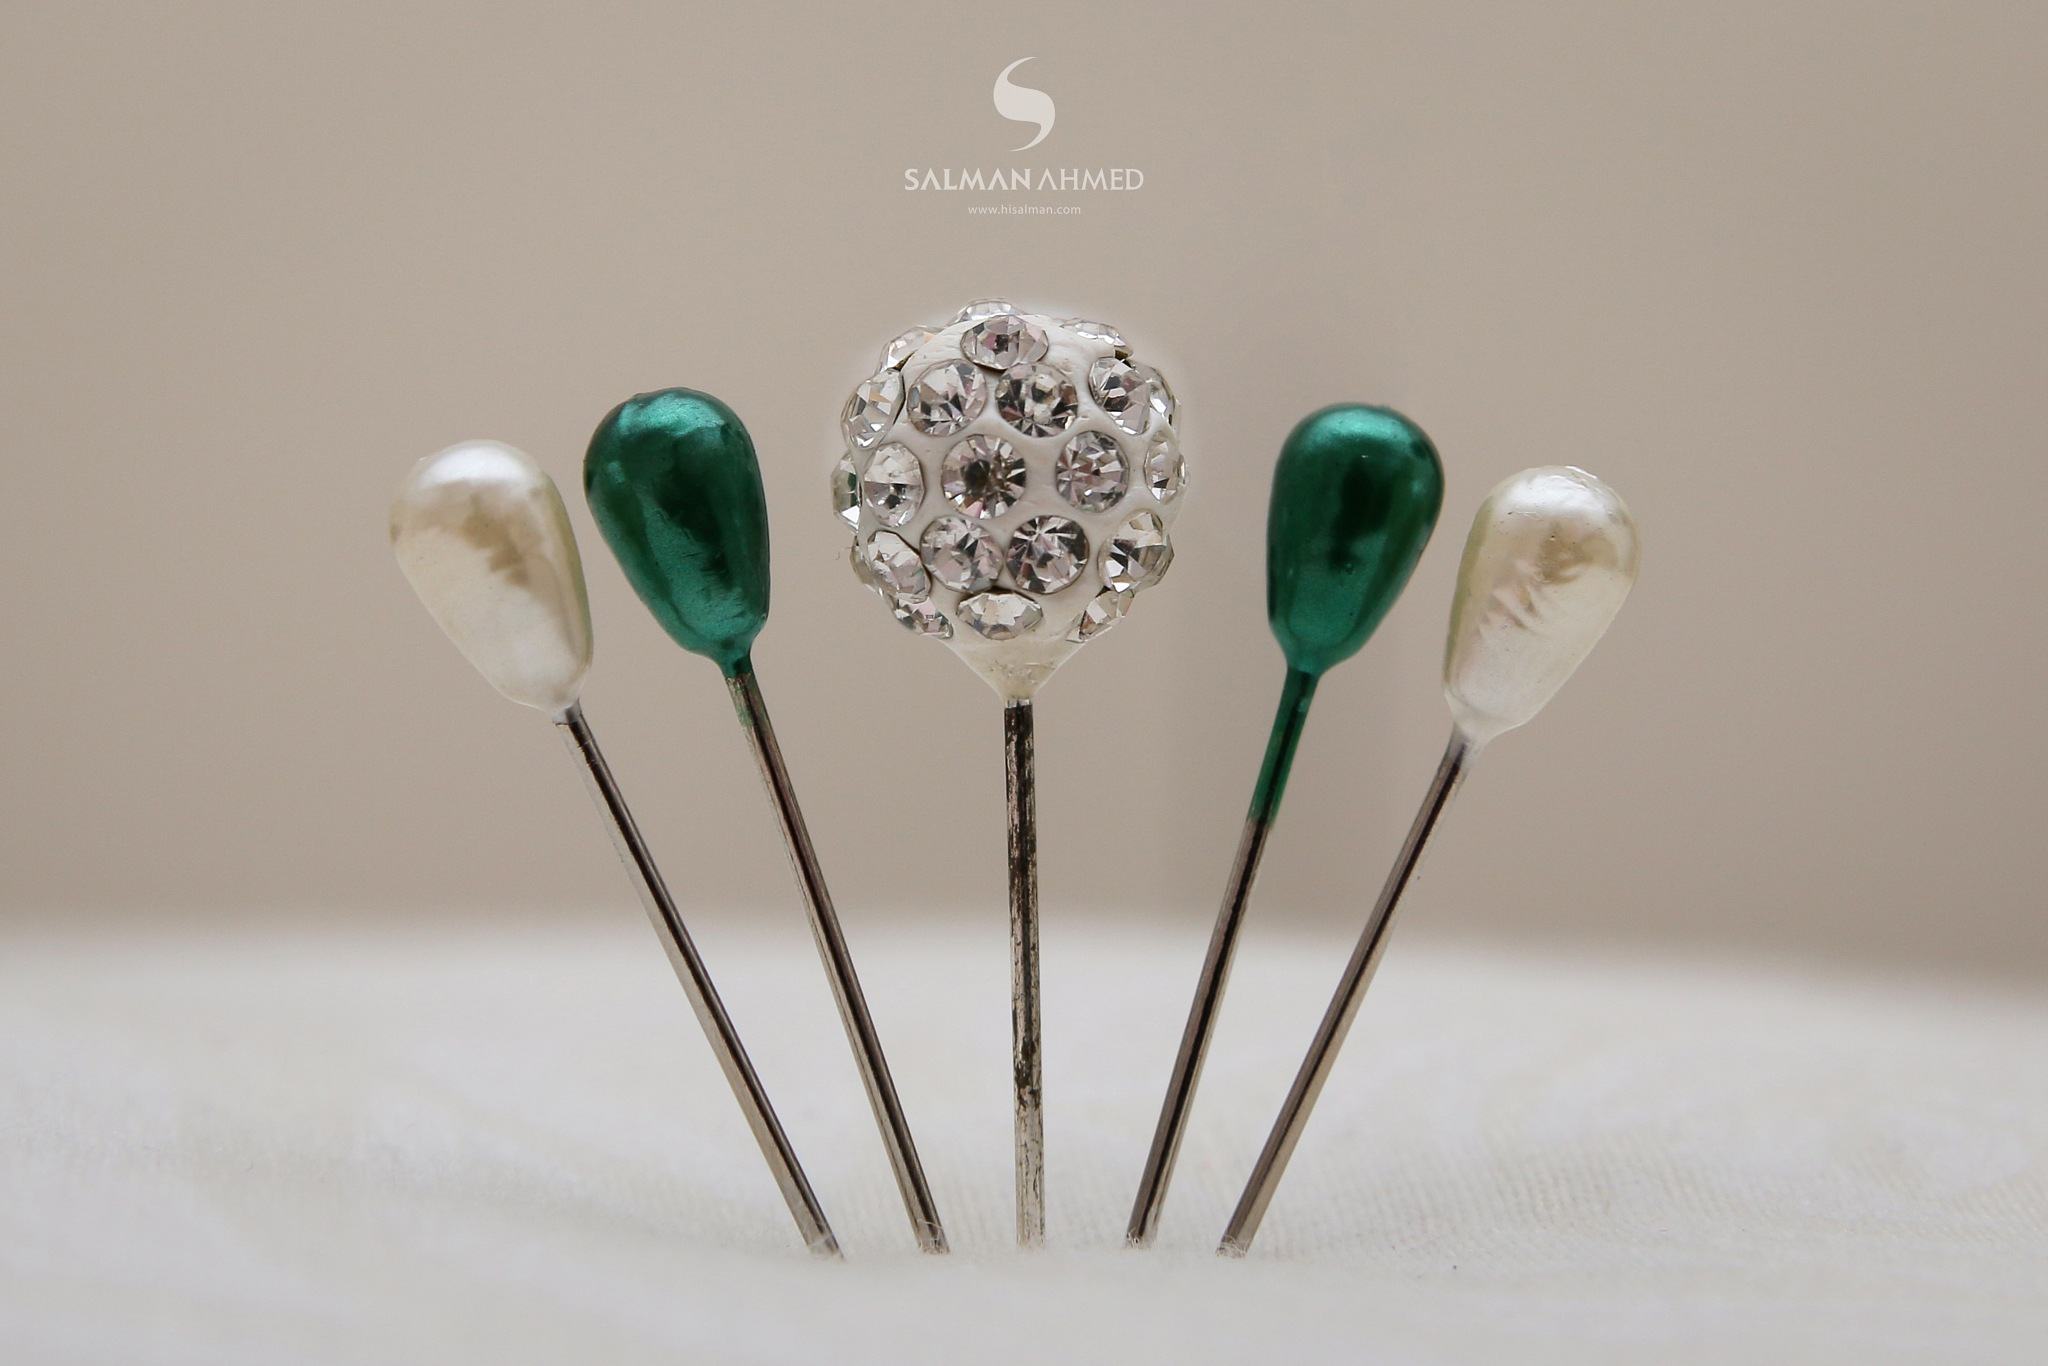 Hijab Pins by SALMAN AHMED